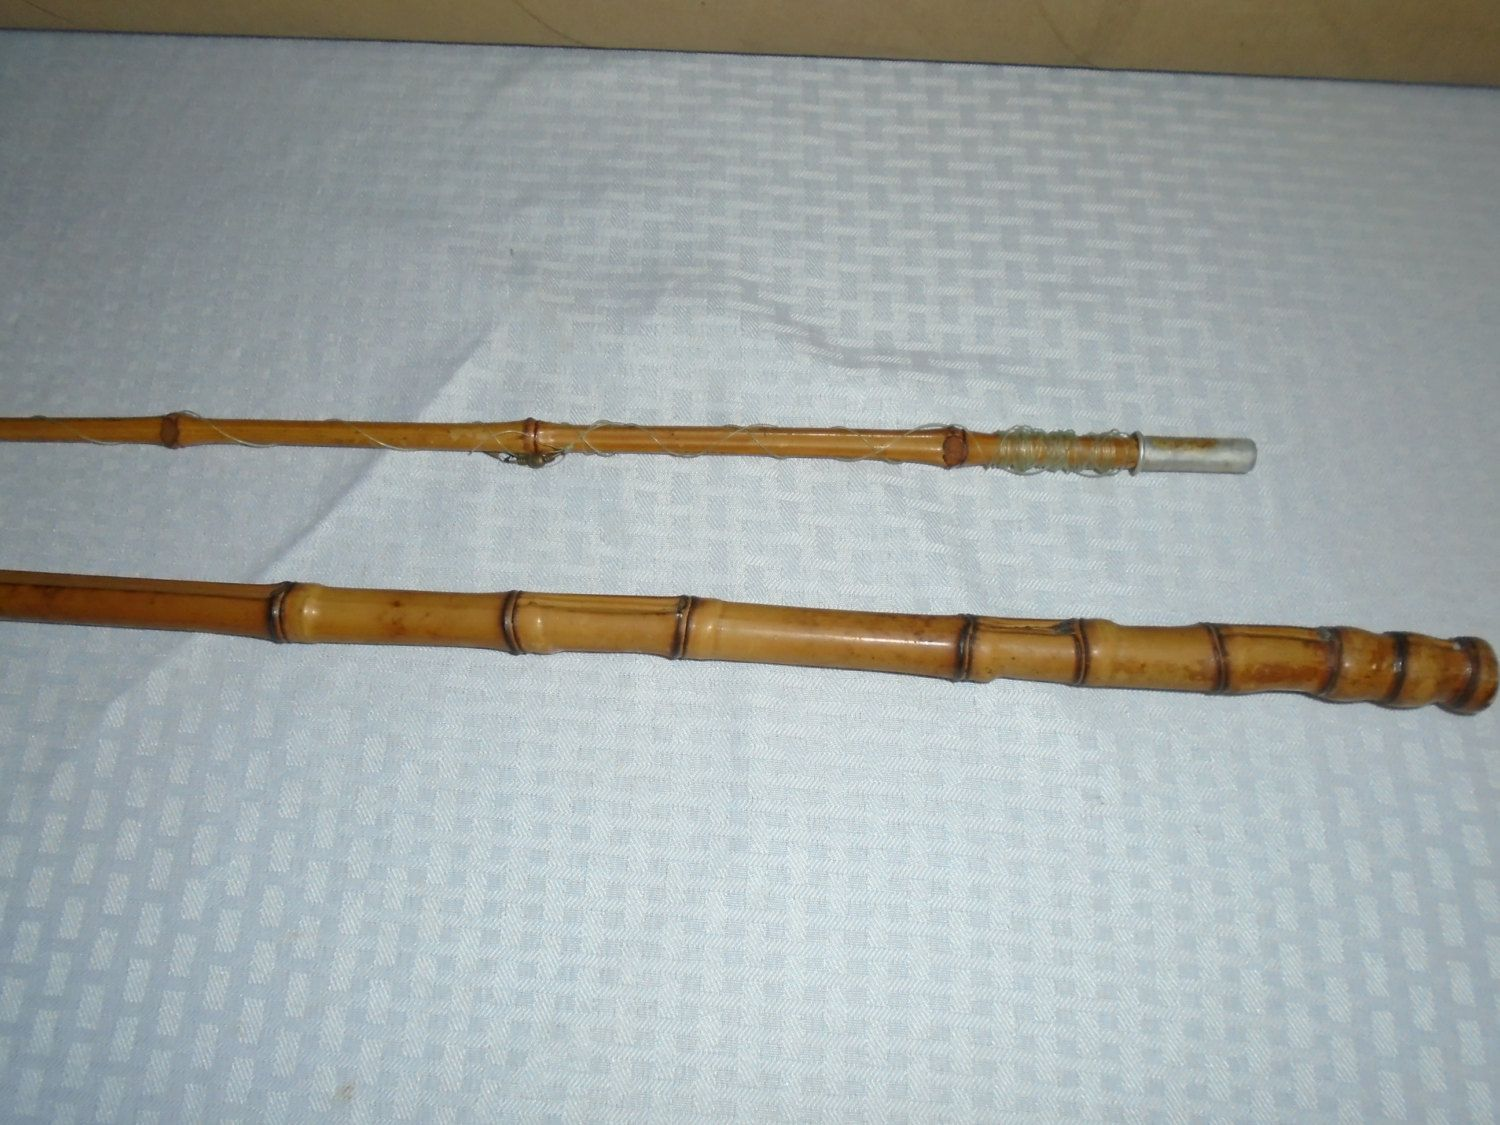 Old cane pole large vintage cane fishing pole bamboo for Vintage fishing poles